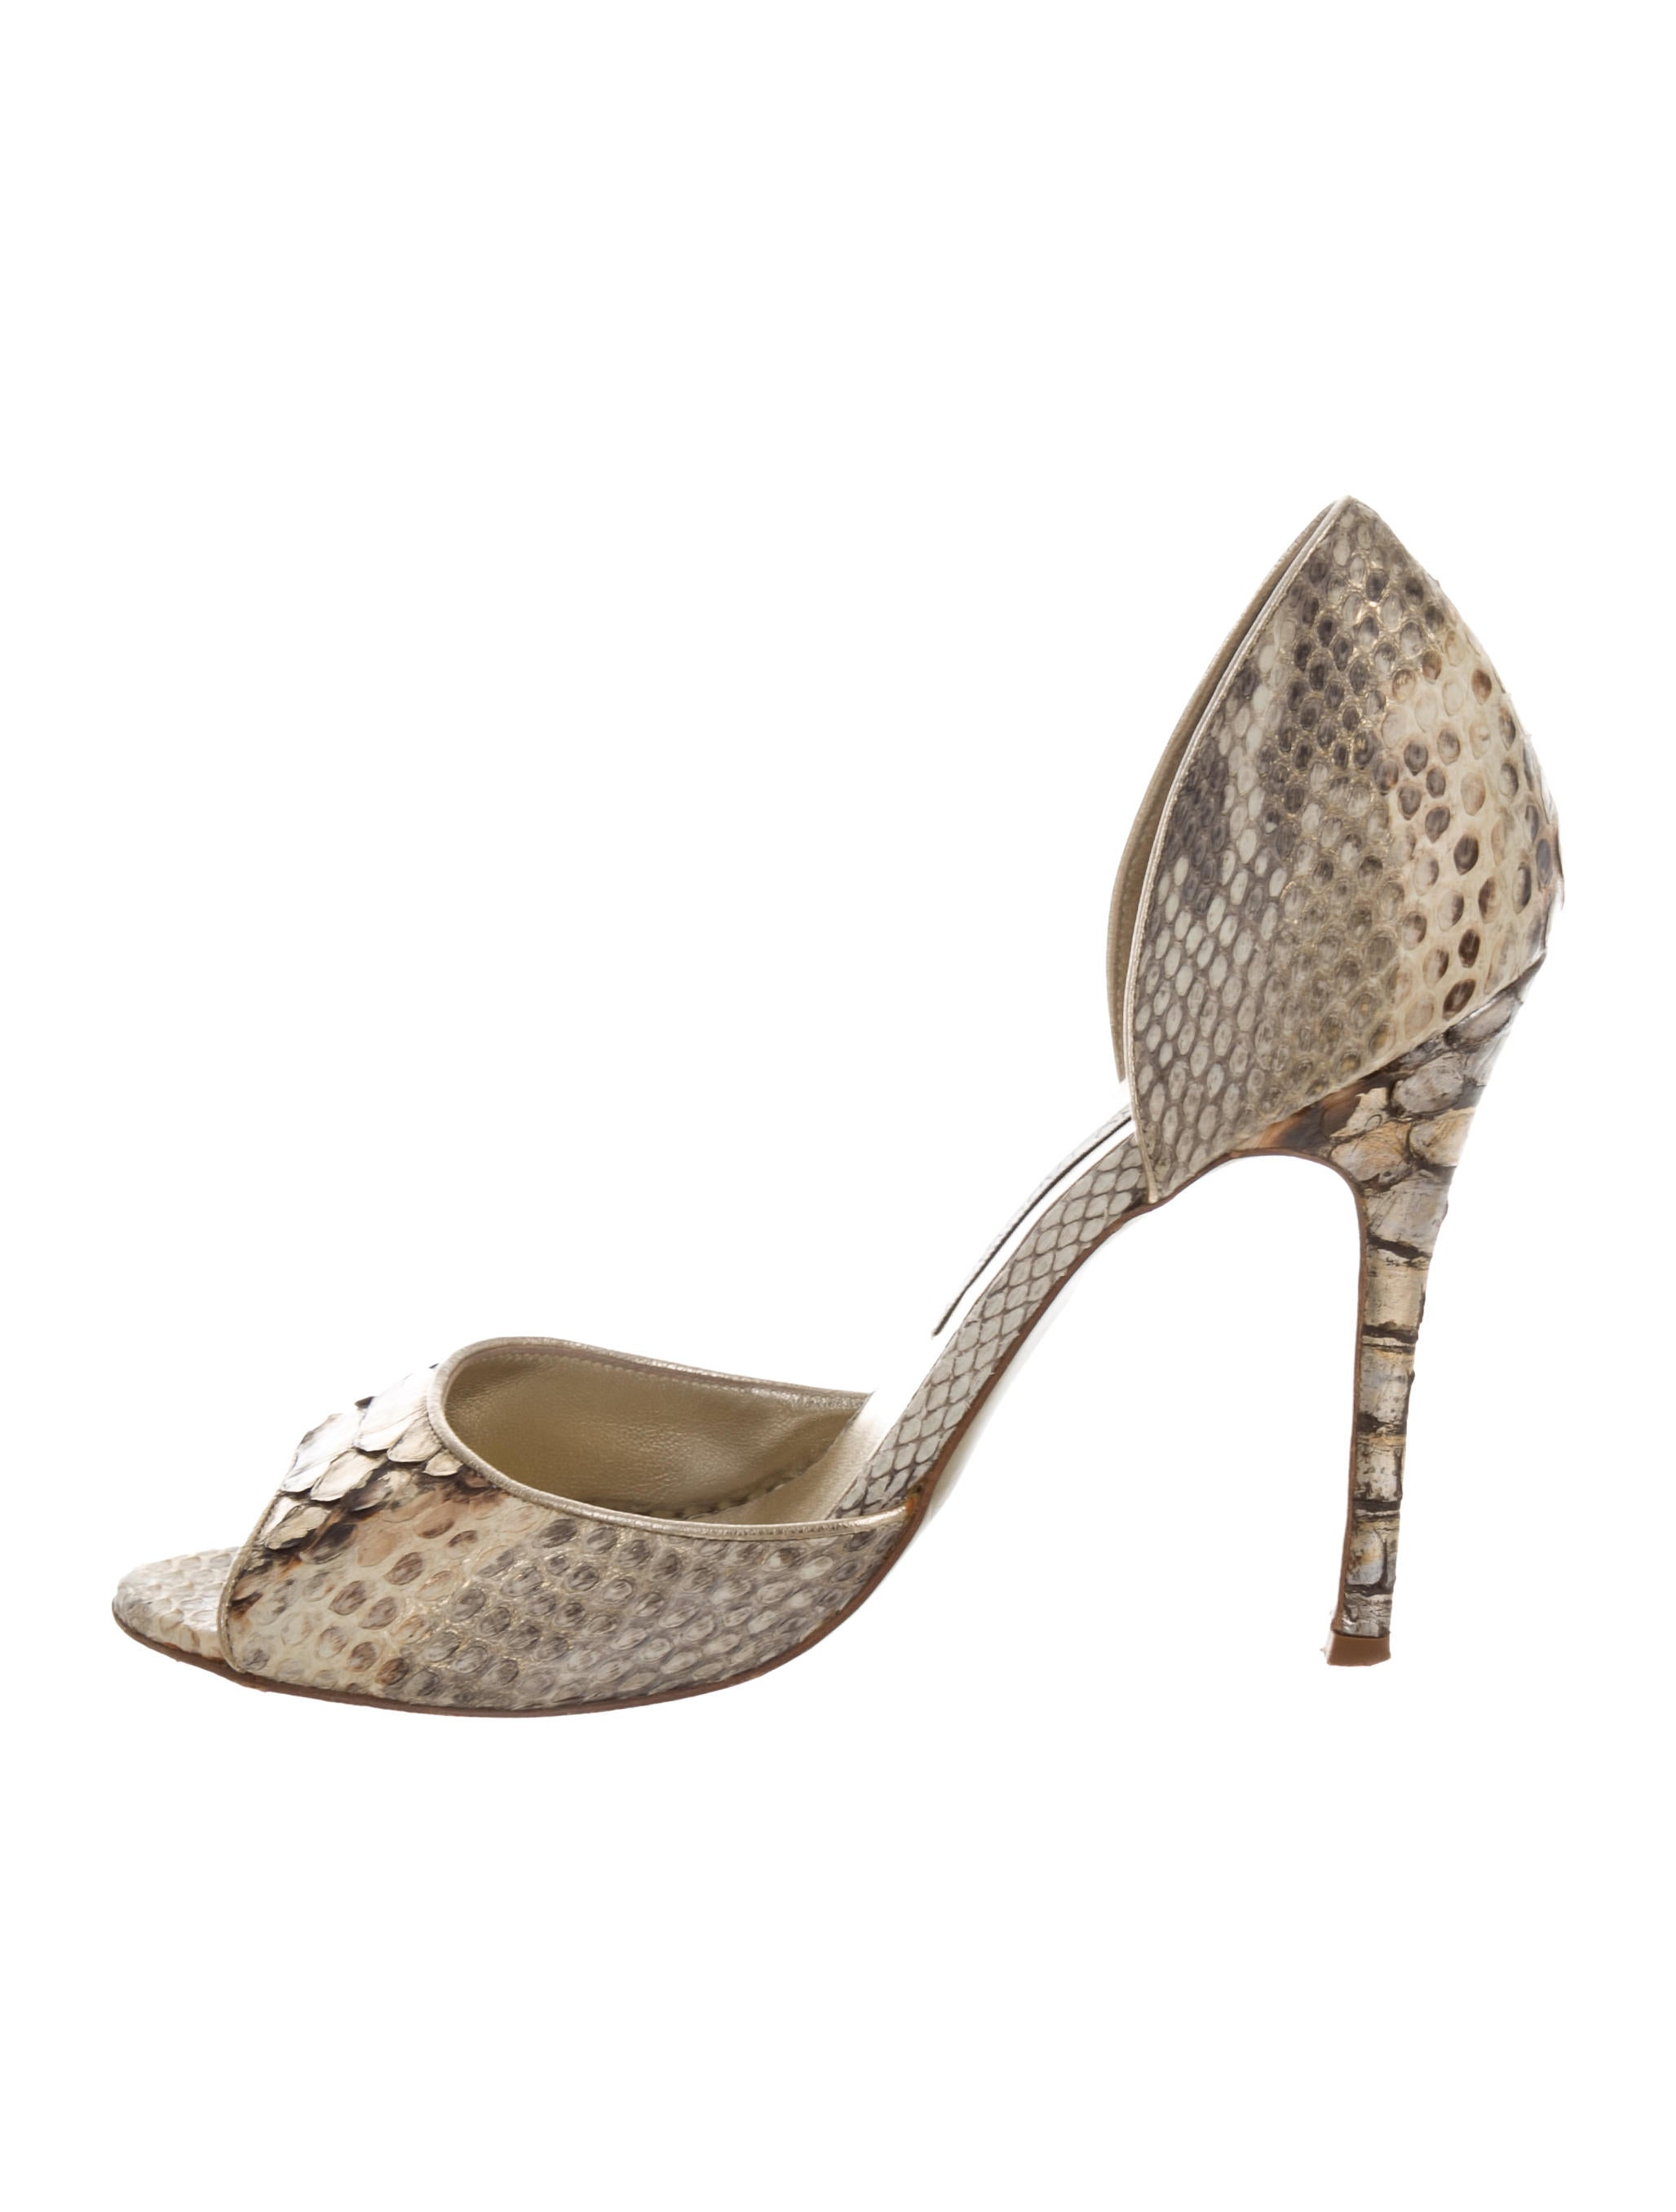 Luciano Padovan Python D'Orsay Pumps best store to get for sale jTZujTC